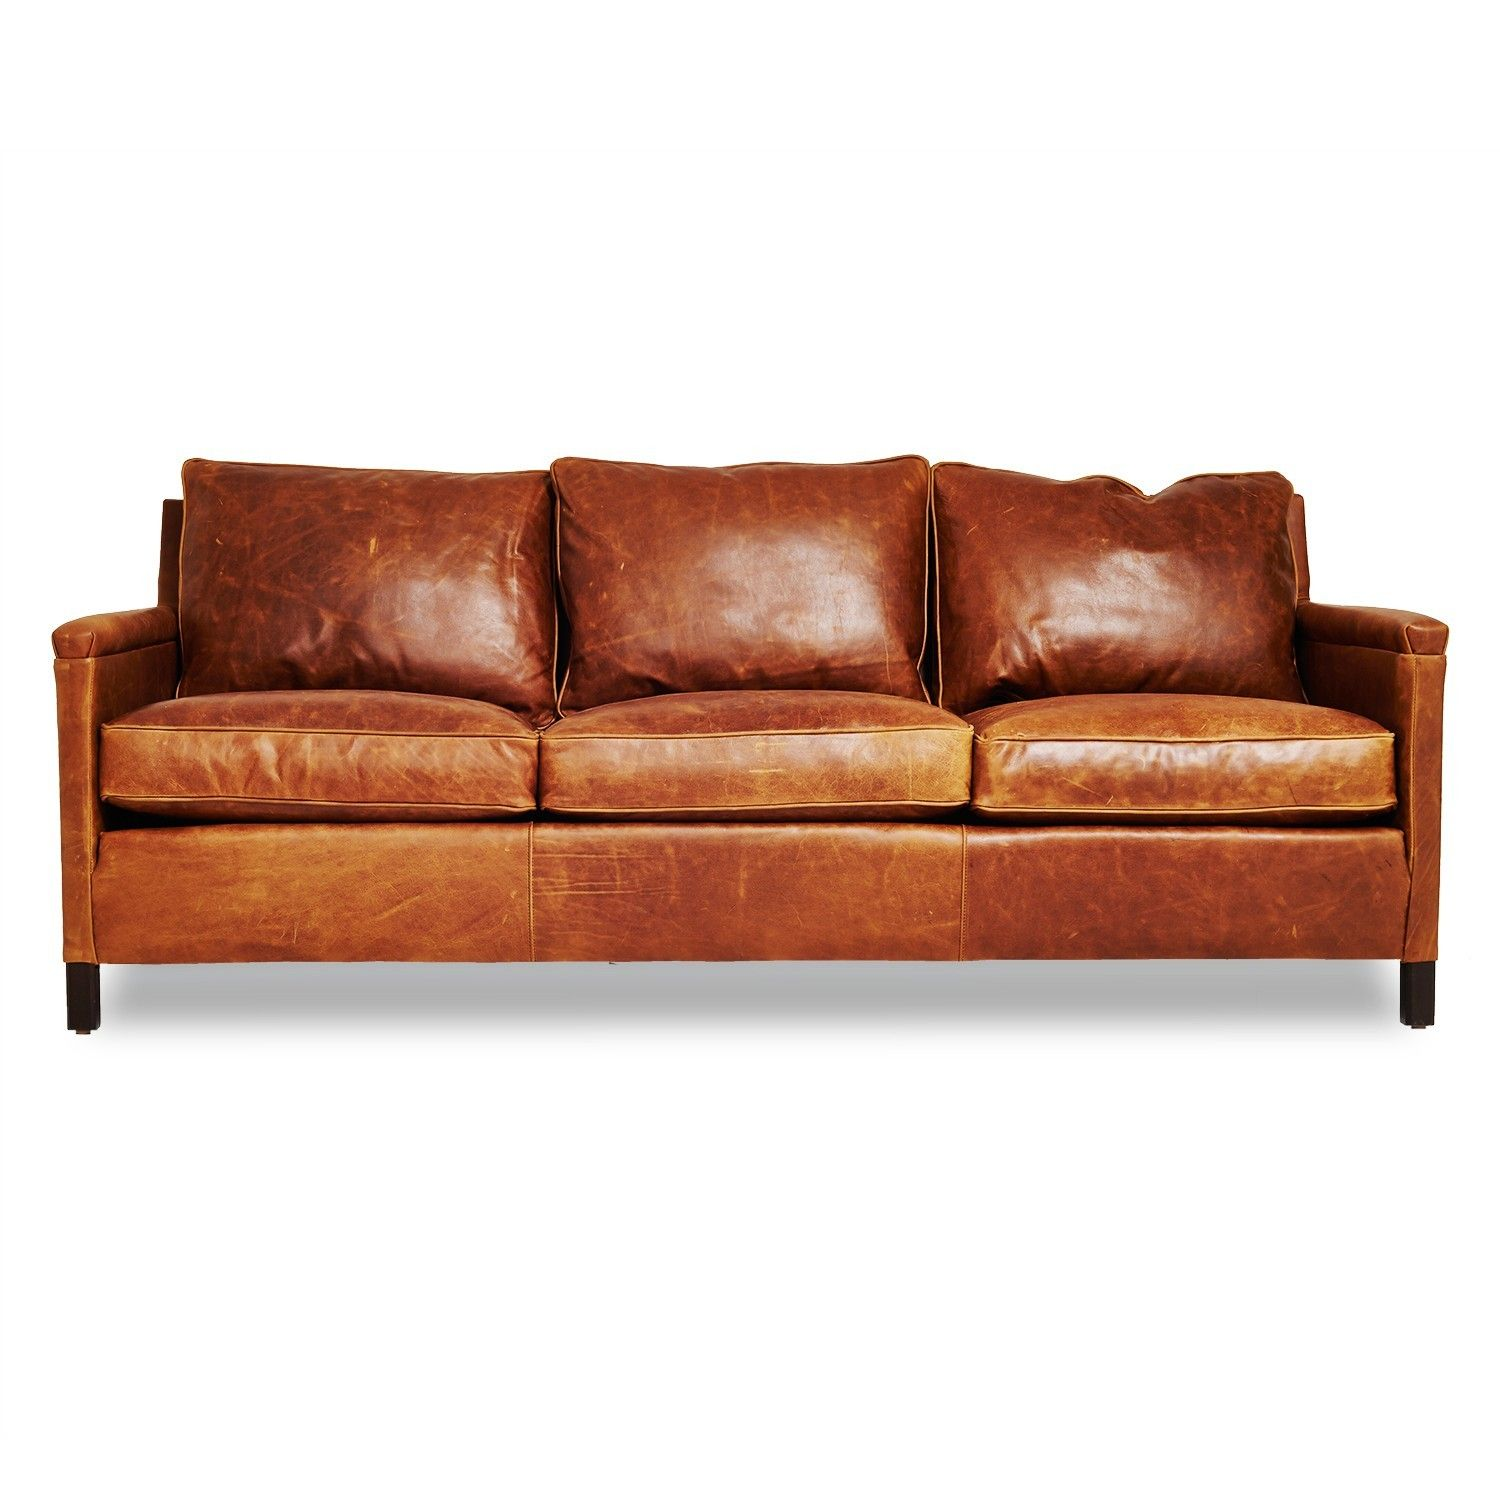 sectional sofa sofas nailhead aifaresidency distressed leather trim of beautiful com with marvelous about